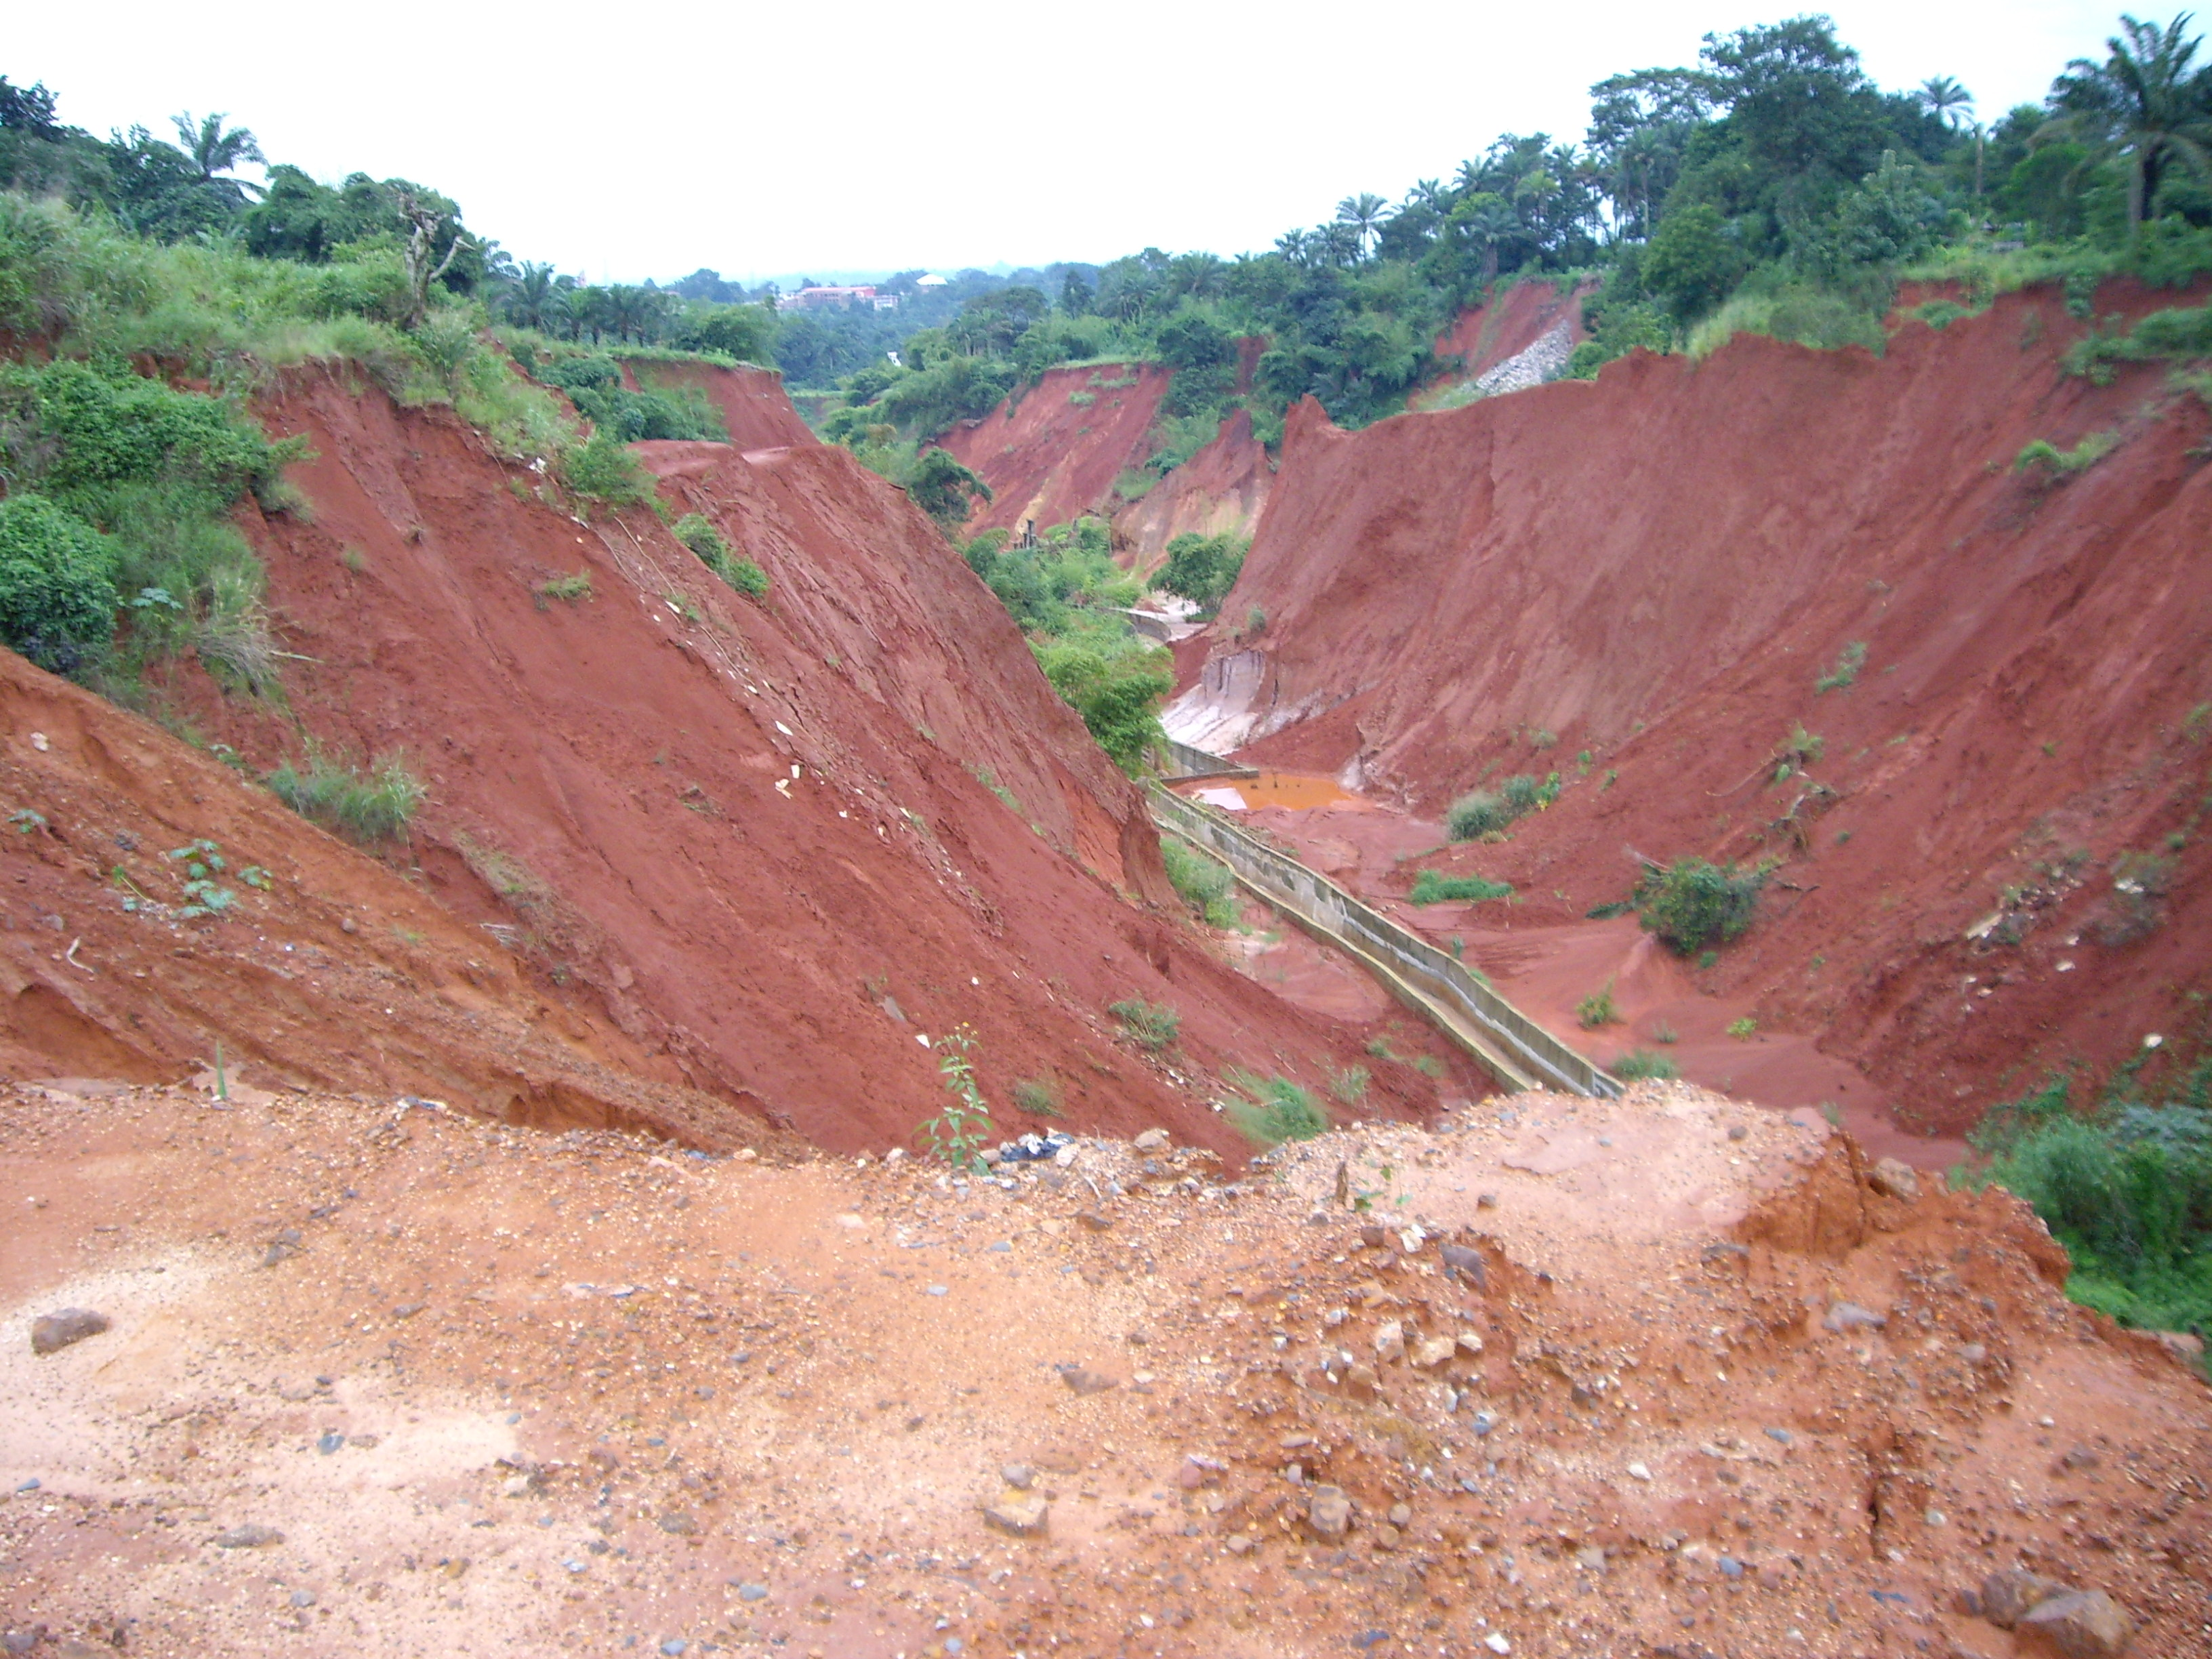 FEC Set Up Committee On South East Erosion